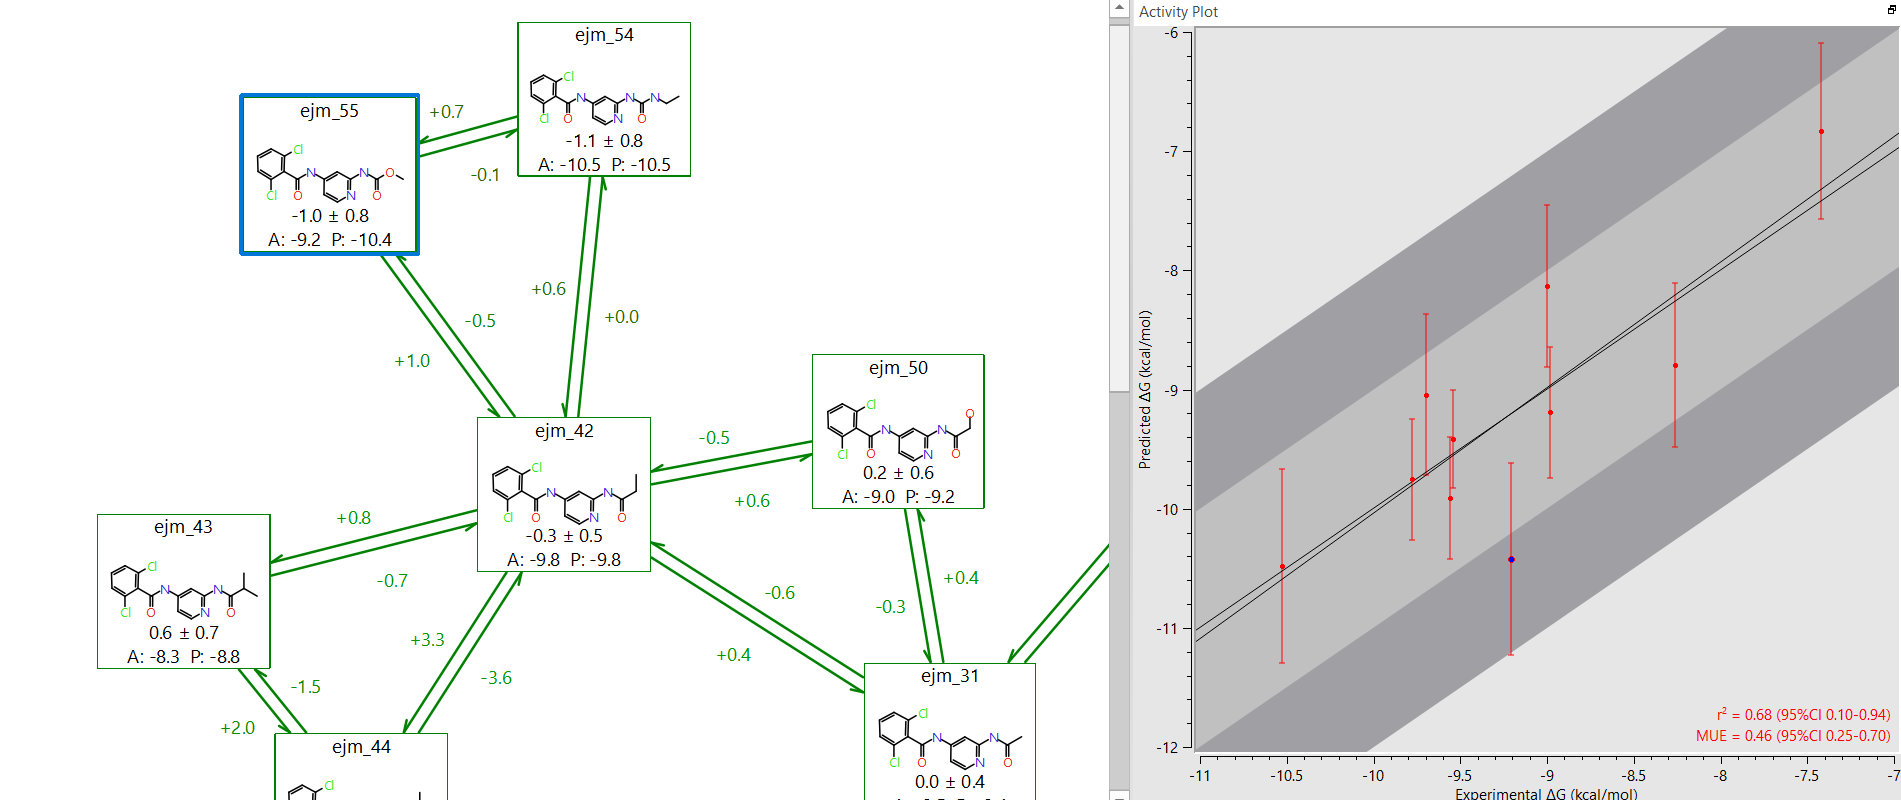 Identify potential outliers on the experimental-predicted activity plot